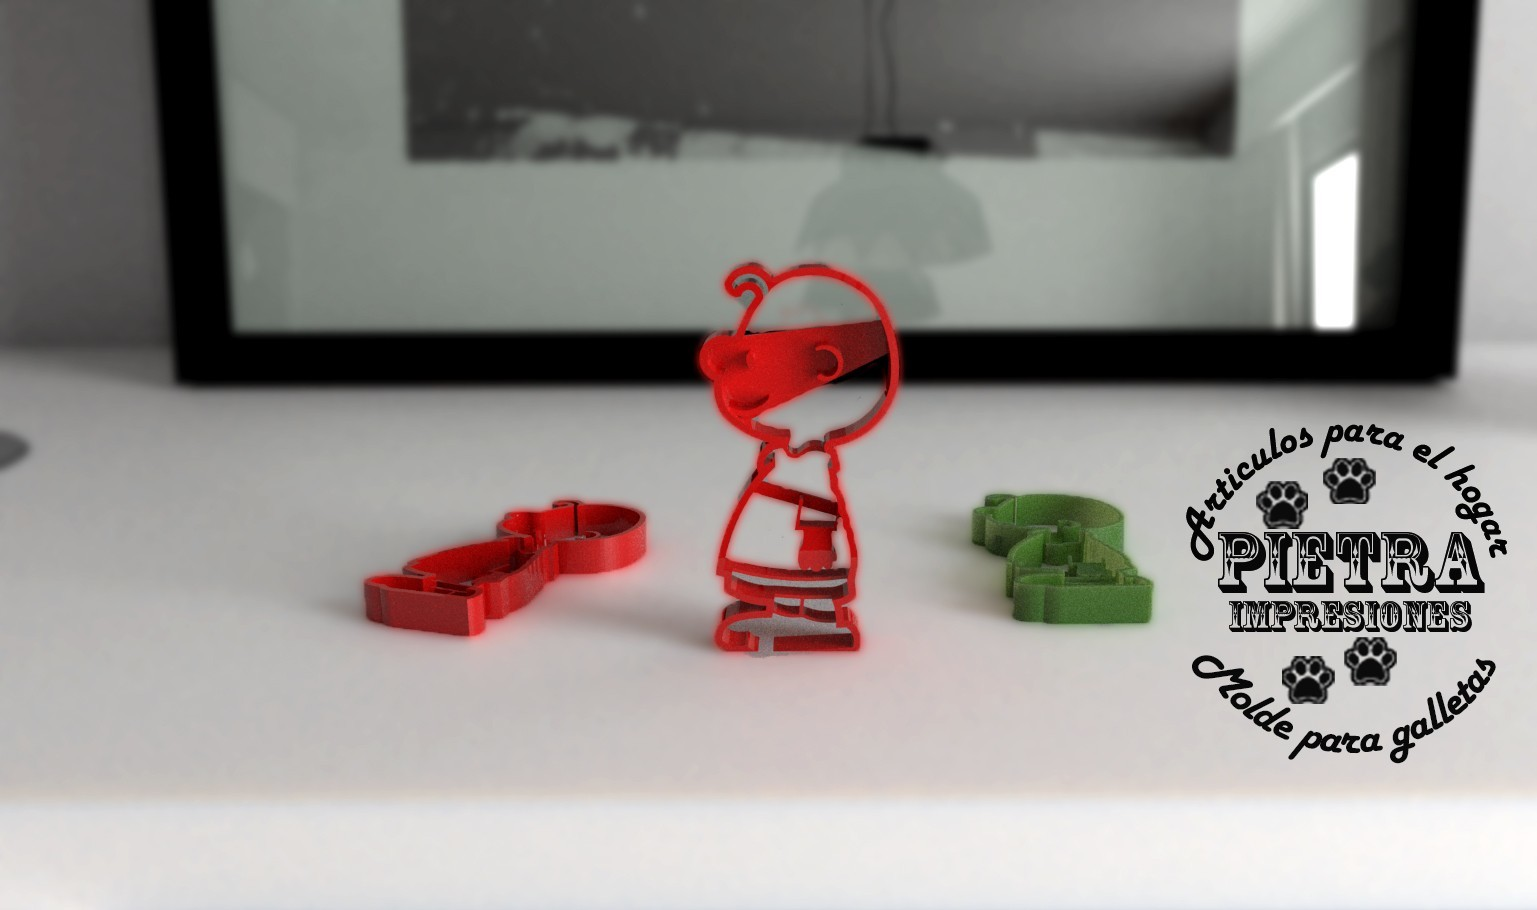 061 charly brown.jpg Download STL file Charlie Brown Fondant Cookie Cutter • 3D printer template, Gustavo015